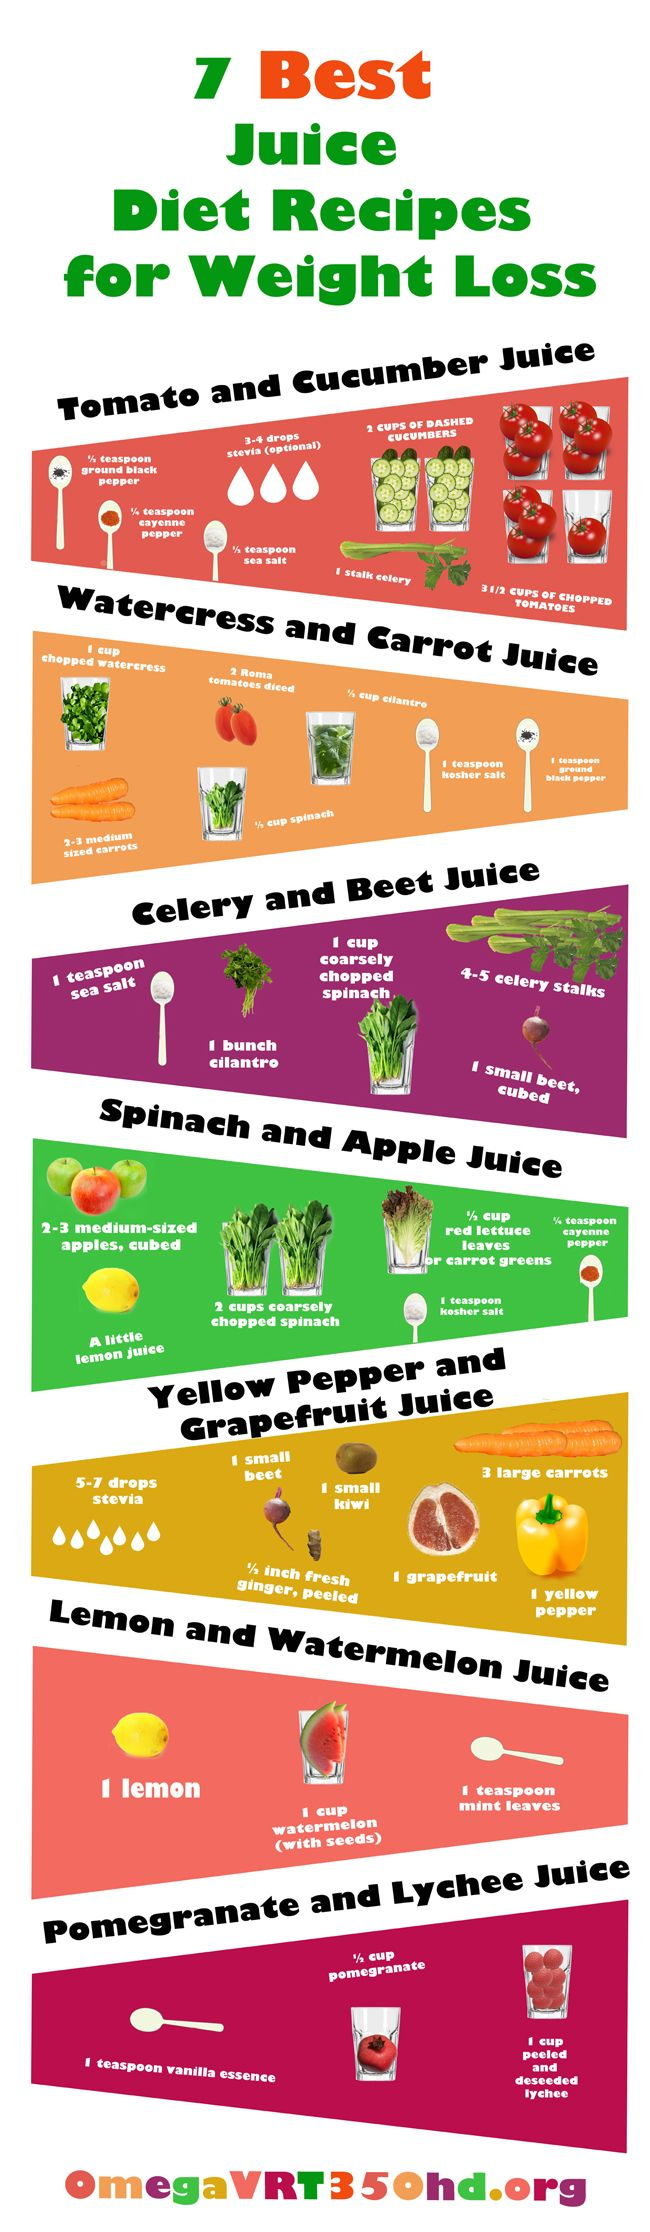 7 Easy and Tasty Juicing Recipes for Weight Loss (Infographic)